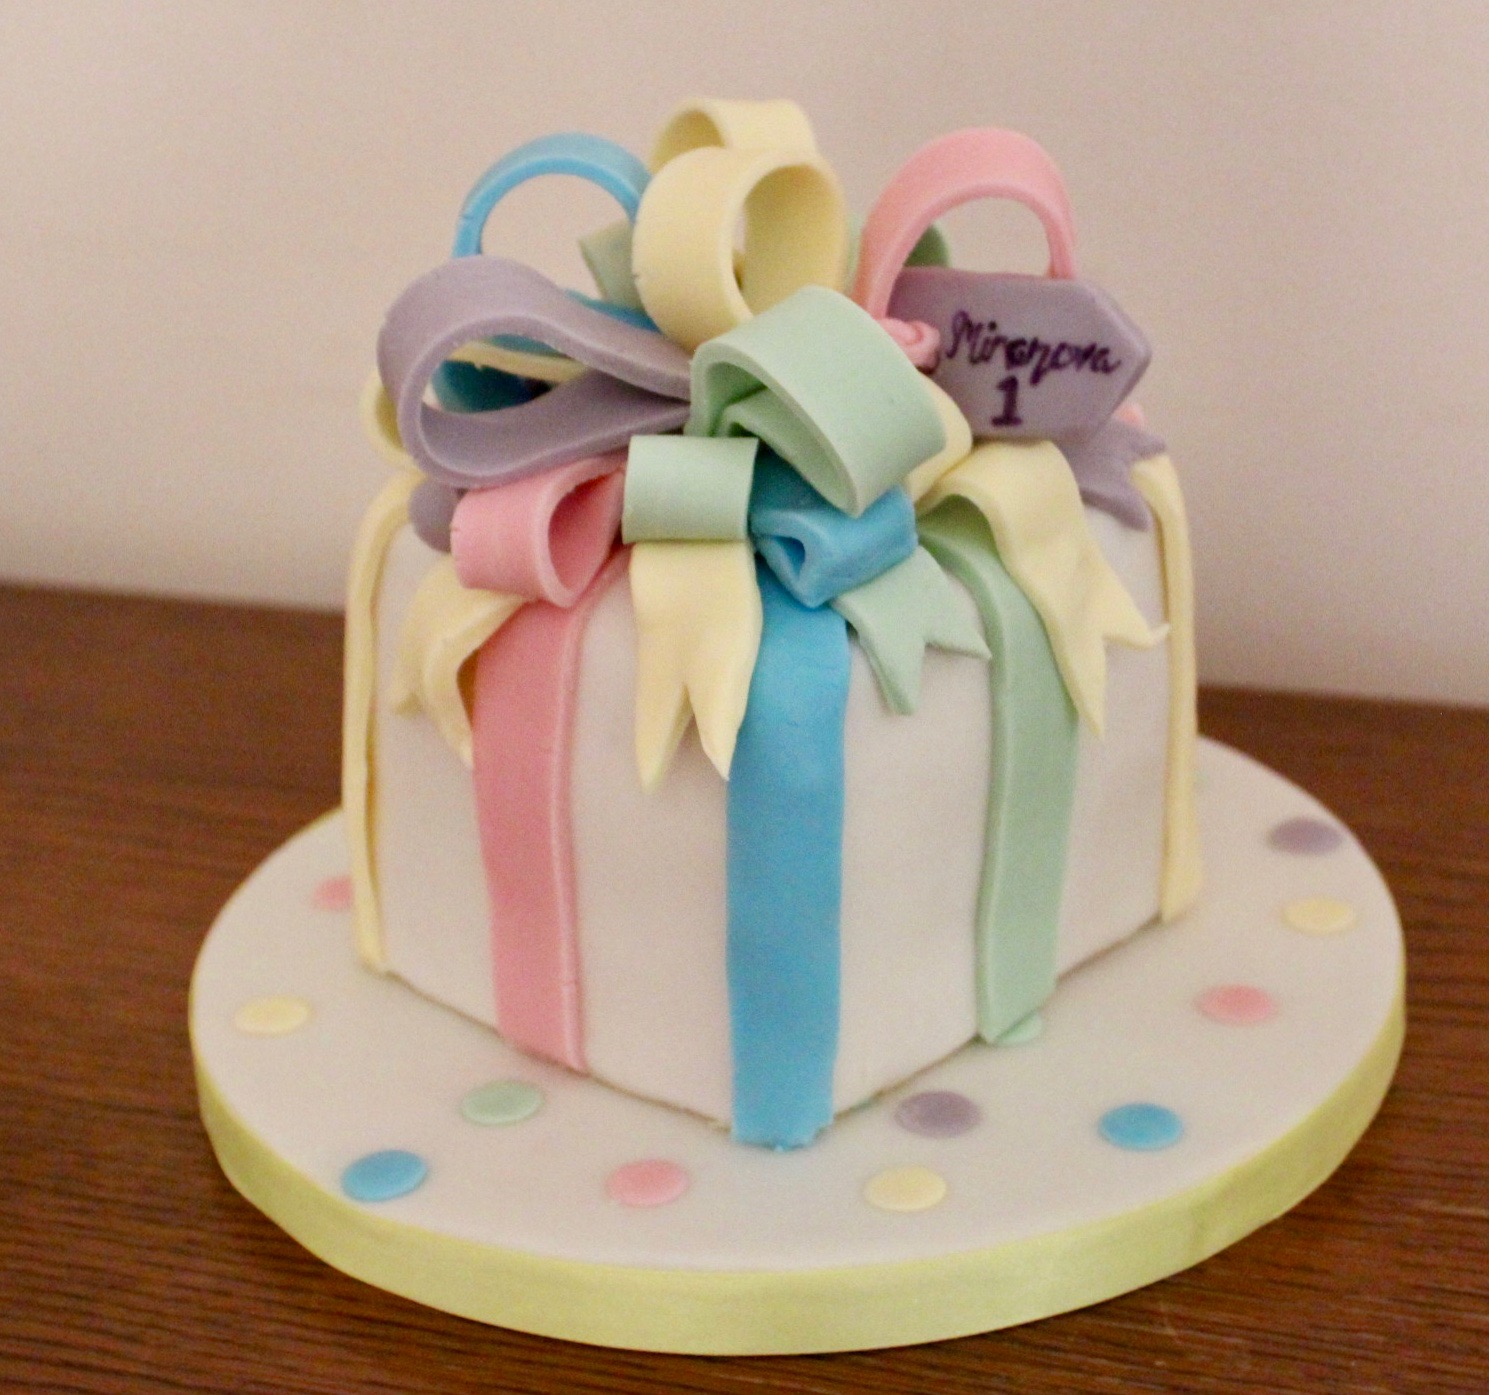 Wrapped Present Birthday Cake